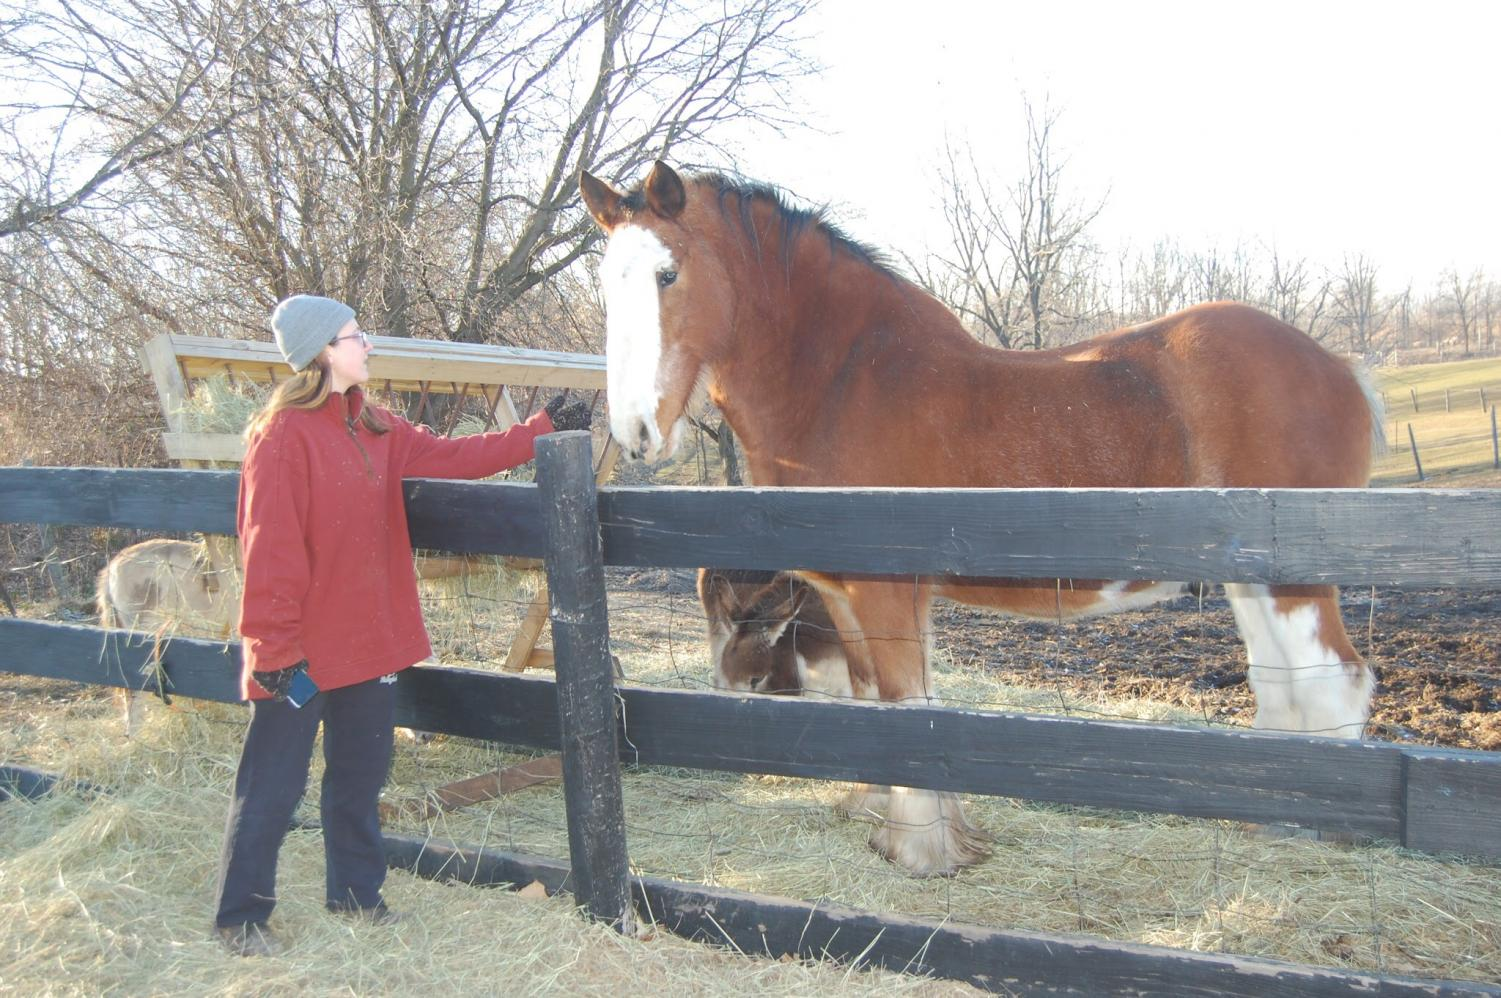 Sydney Puda feeds and cares for Scotty the Horse at the Maybury Farm where she volunteers after school on Tuesdays and Fridays. (Photo credit: Sabrina Yono) Sydney Puda feeds and cares for Scotty the Horse at the Maybury Farm where she volunteers after school on Tuesdays and Fridays. (Photo credit: Sabrina Yono) Sydney Puda feeds and cares for Scotty the Horse at the Maybury Farm where she volunteers after school on Tuesdays and Fridays. (Photo credit: Sabrina Yono)